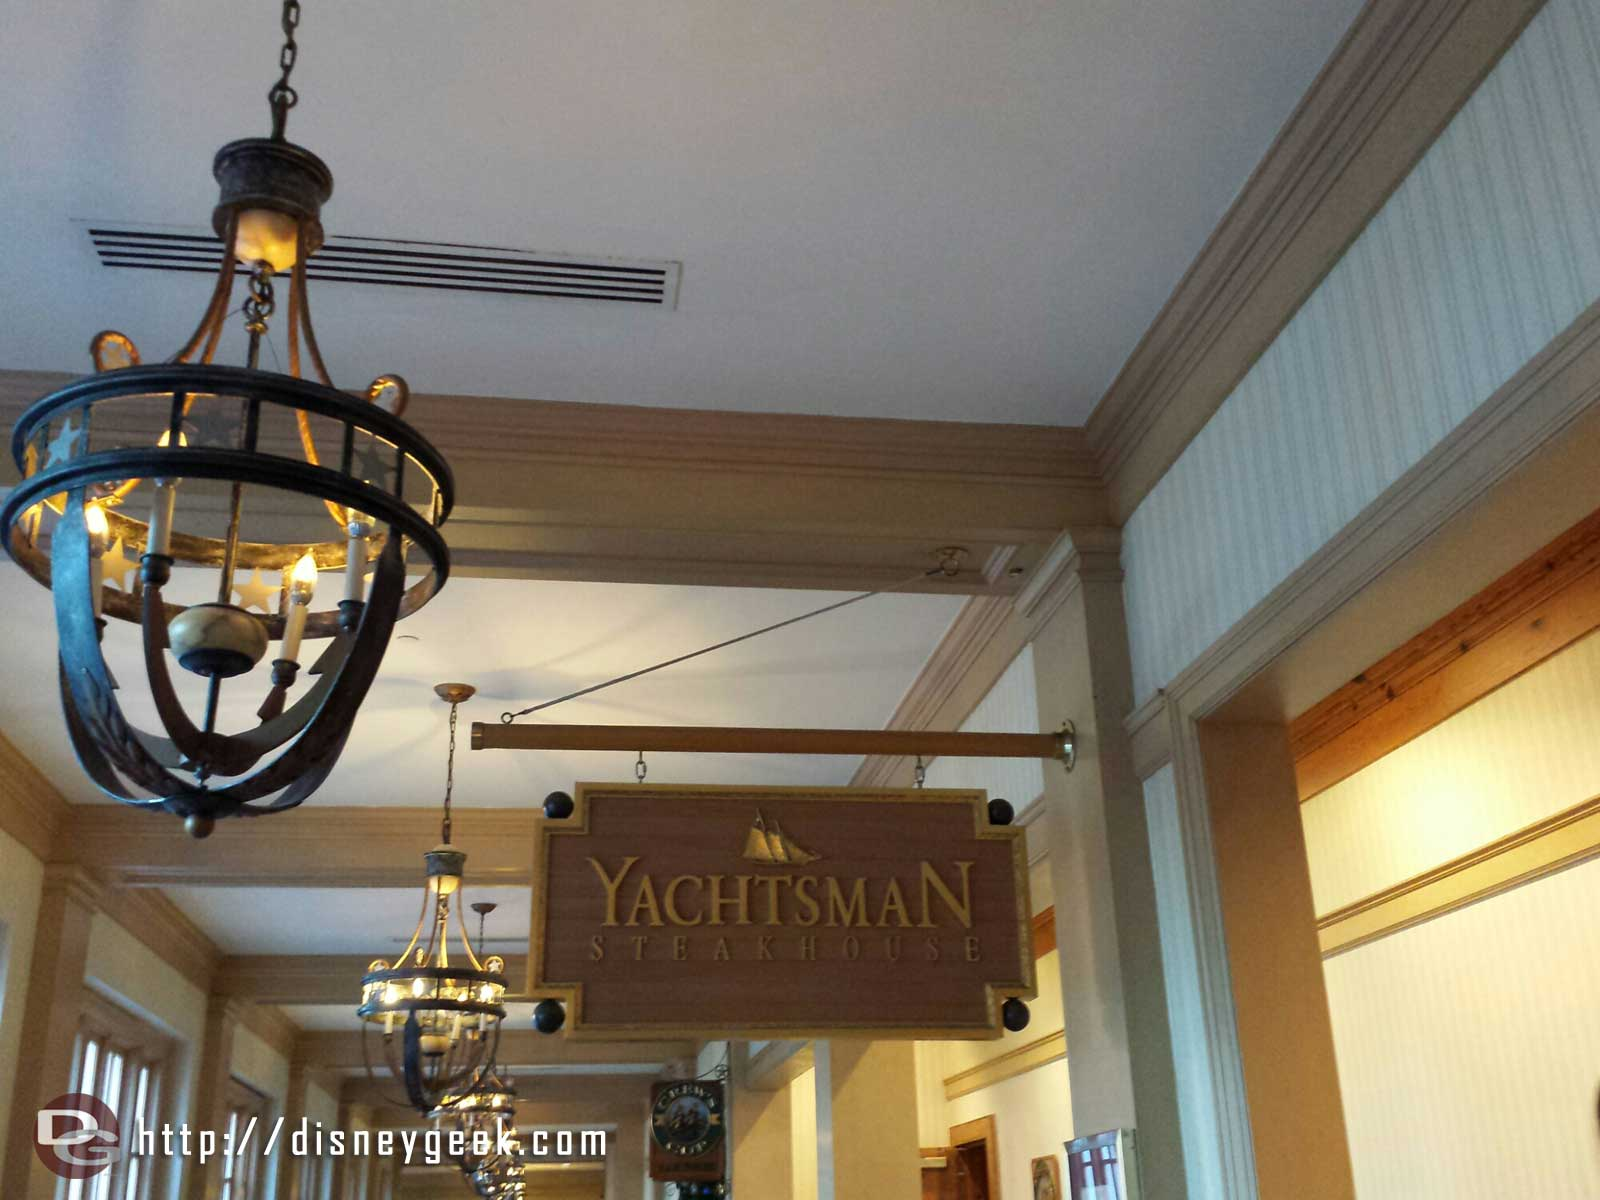 Dinner this evening at Yachtsman Steakhouse #WDW